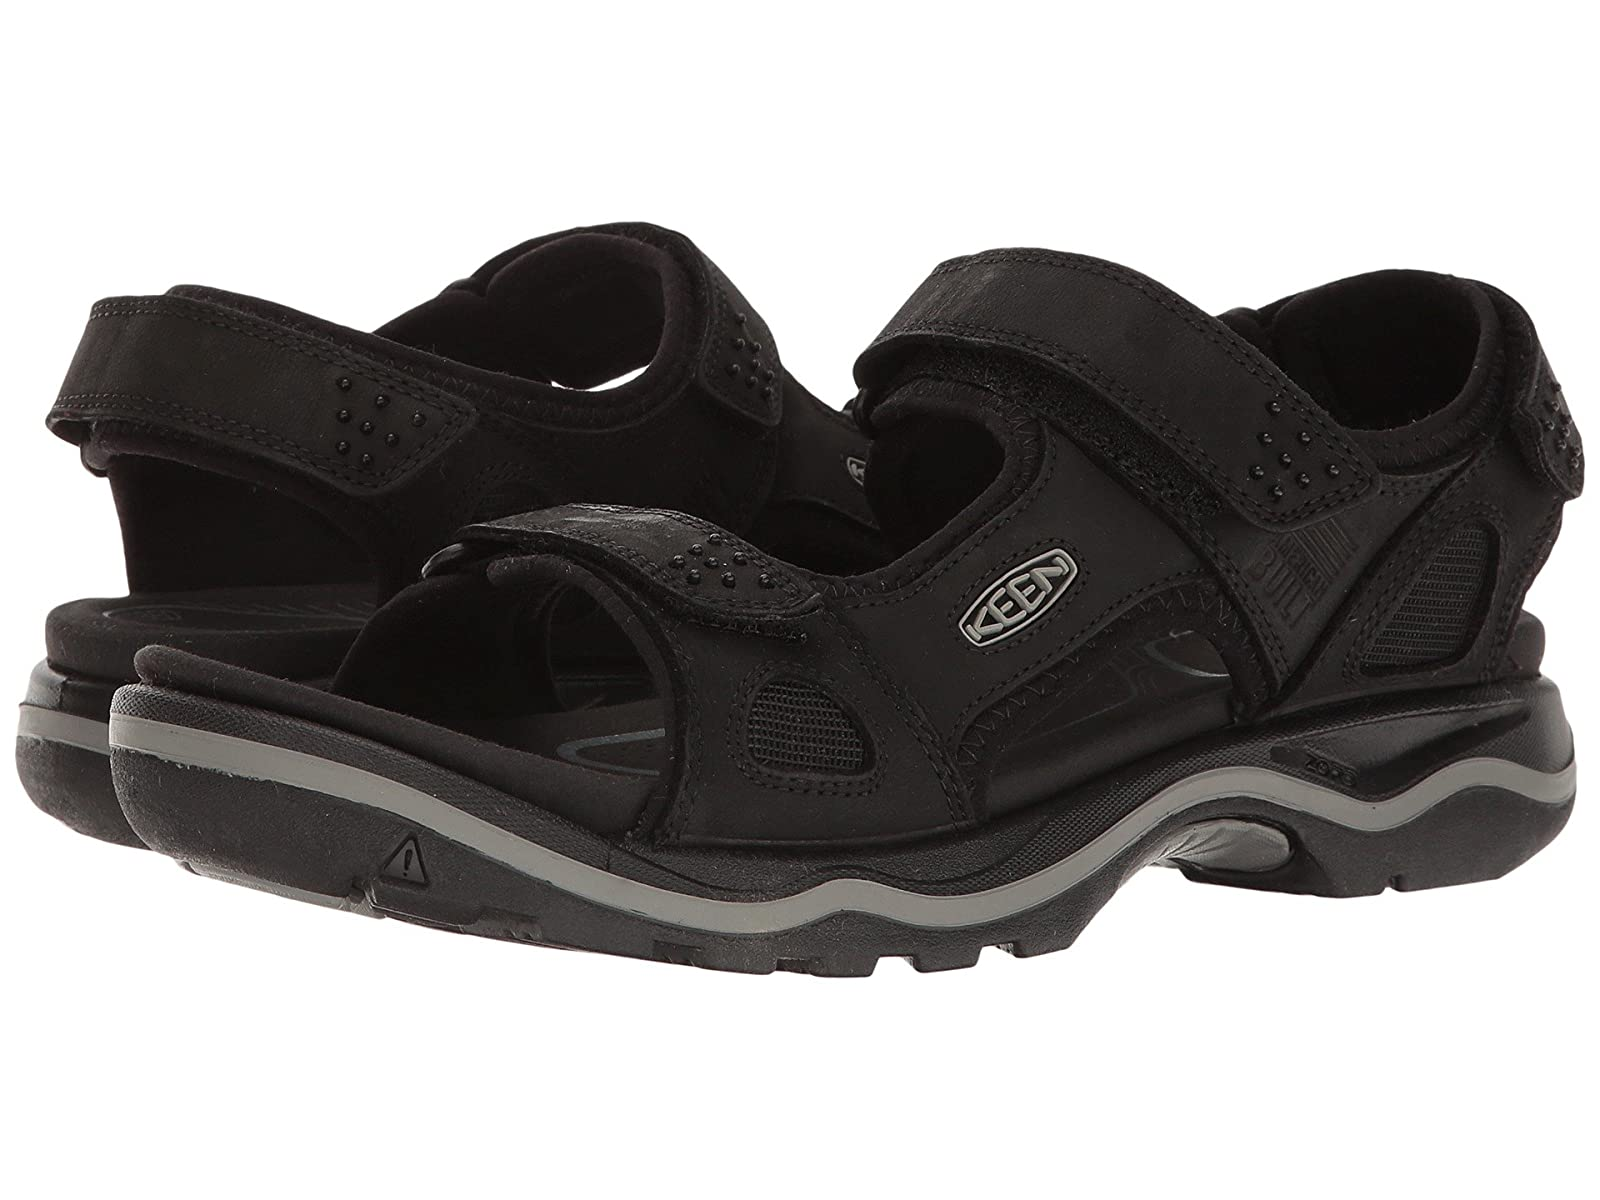 Keen Rialto 3 PointAtmospheric grades have affordable shoes